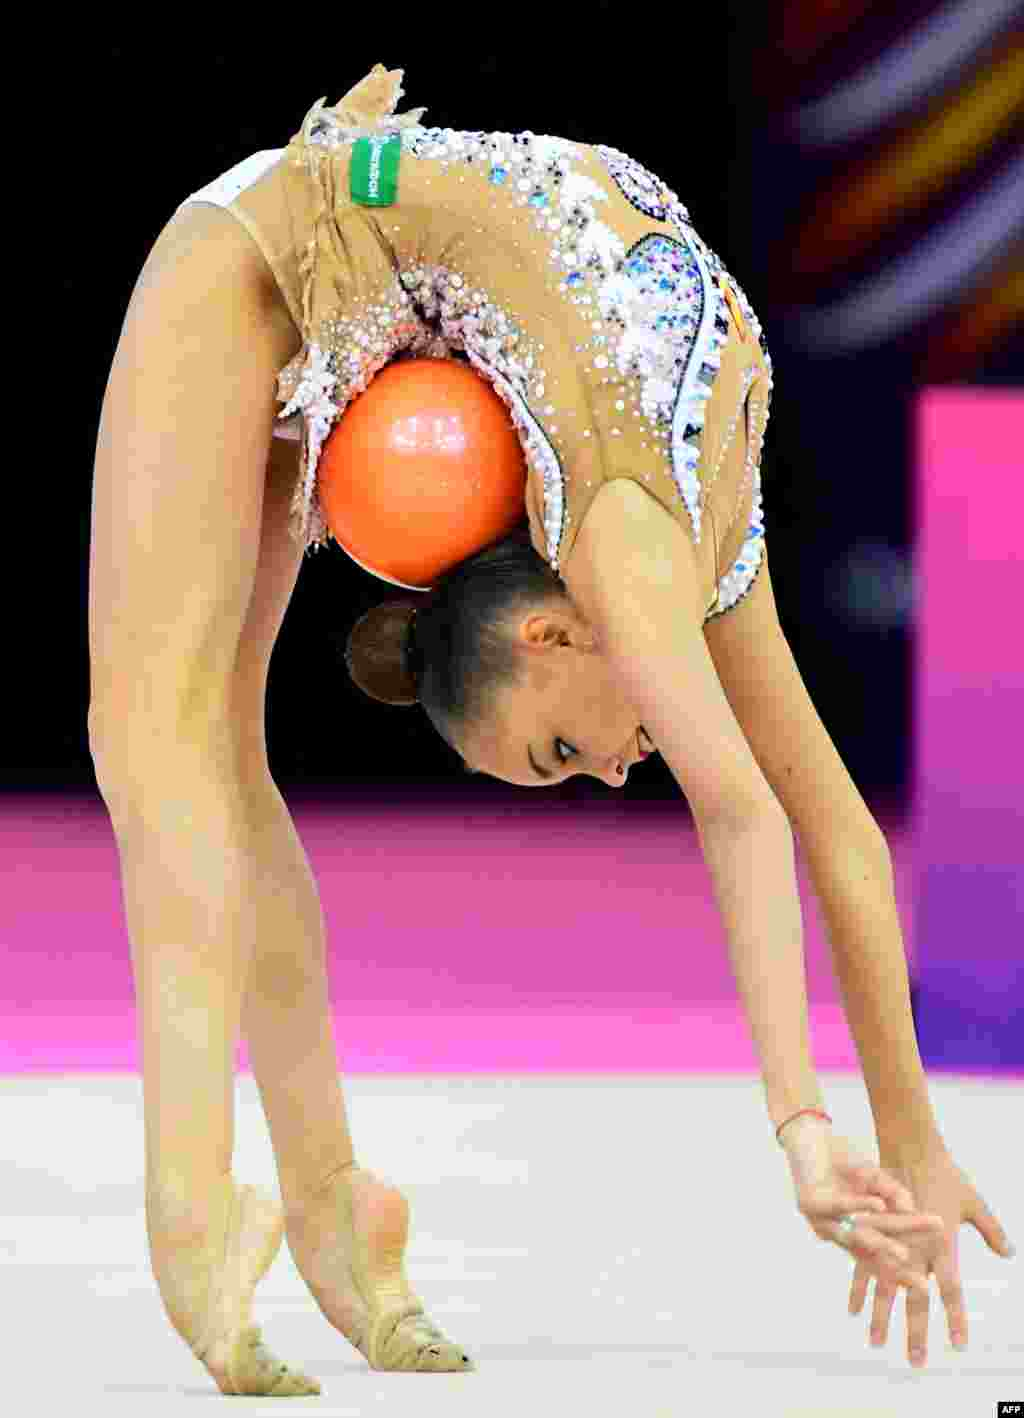 Gold medalist, Russia's Arina Averina performs with her ball in Papp Laszlo Arena of Budapest, Hungary, during the apparatus final day of 33rd European Rythmic Gymnastic Championships.